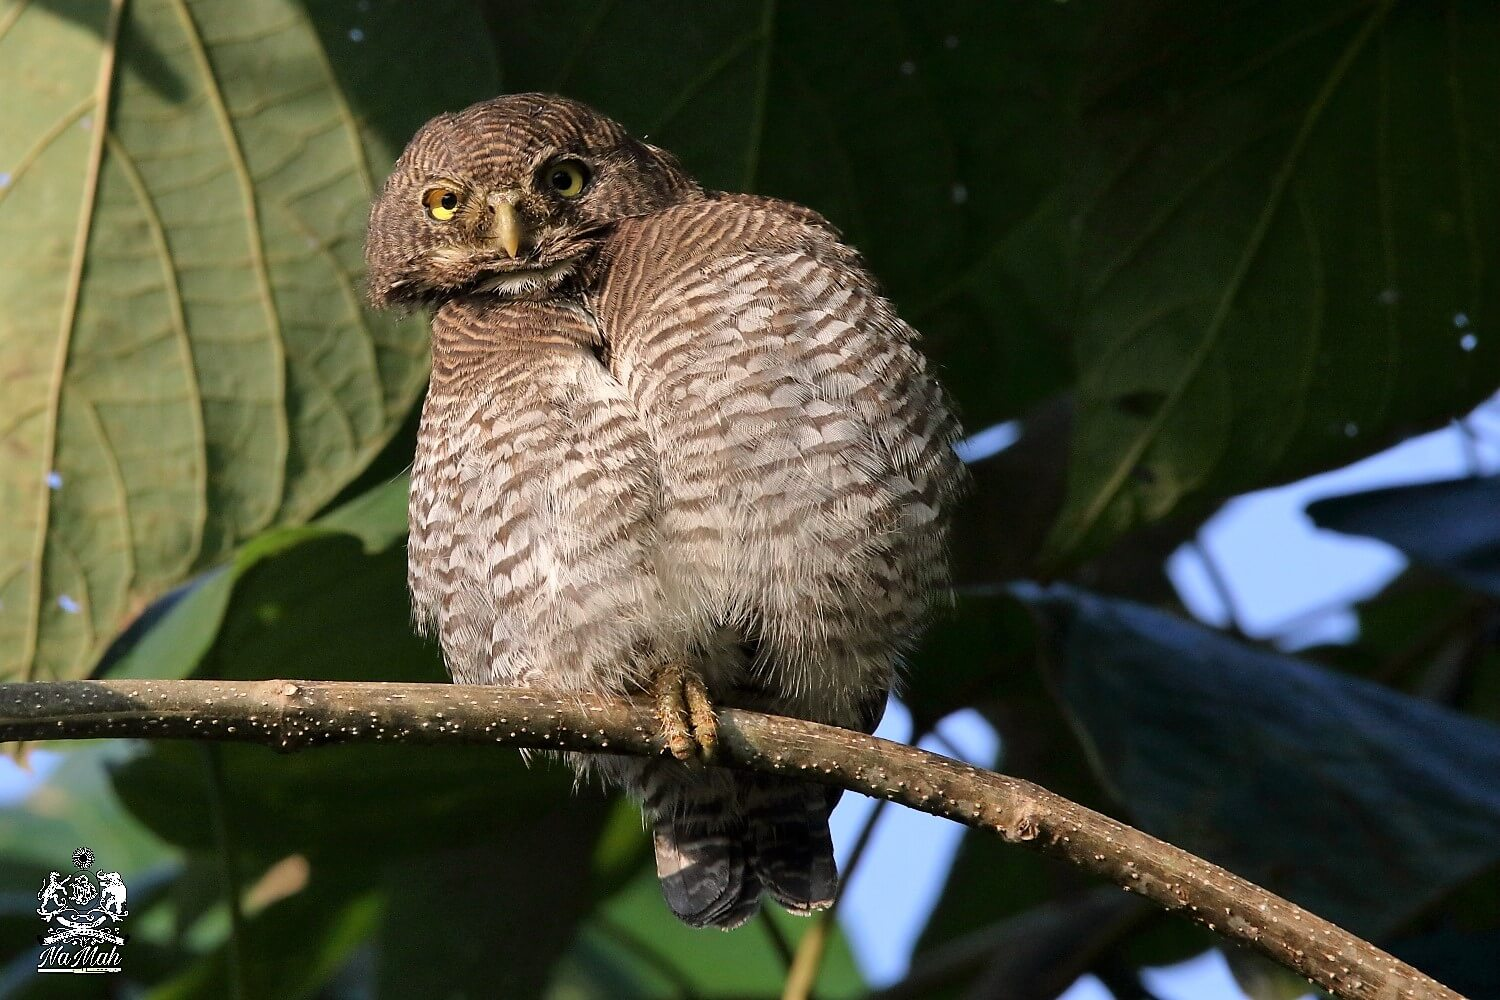 Owlet looking for prey clicked while on bird watching